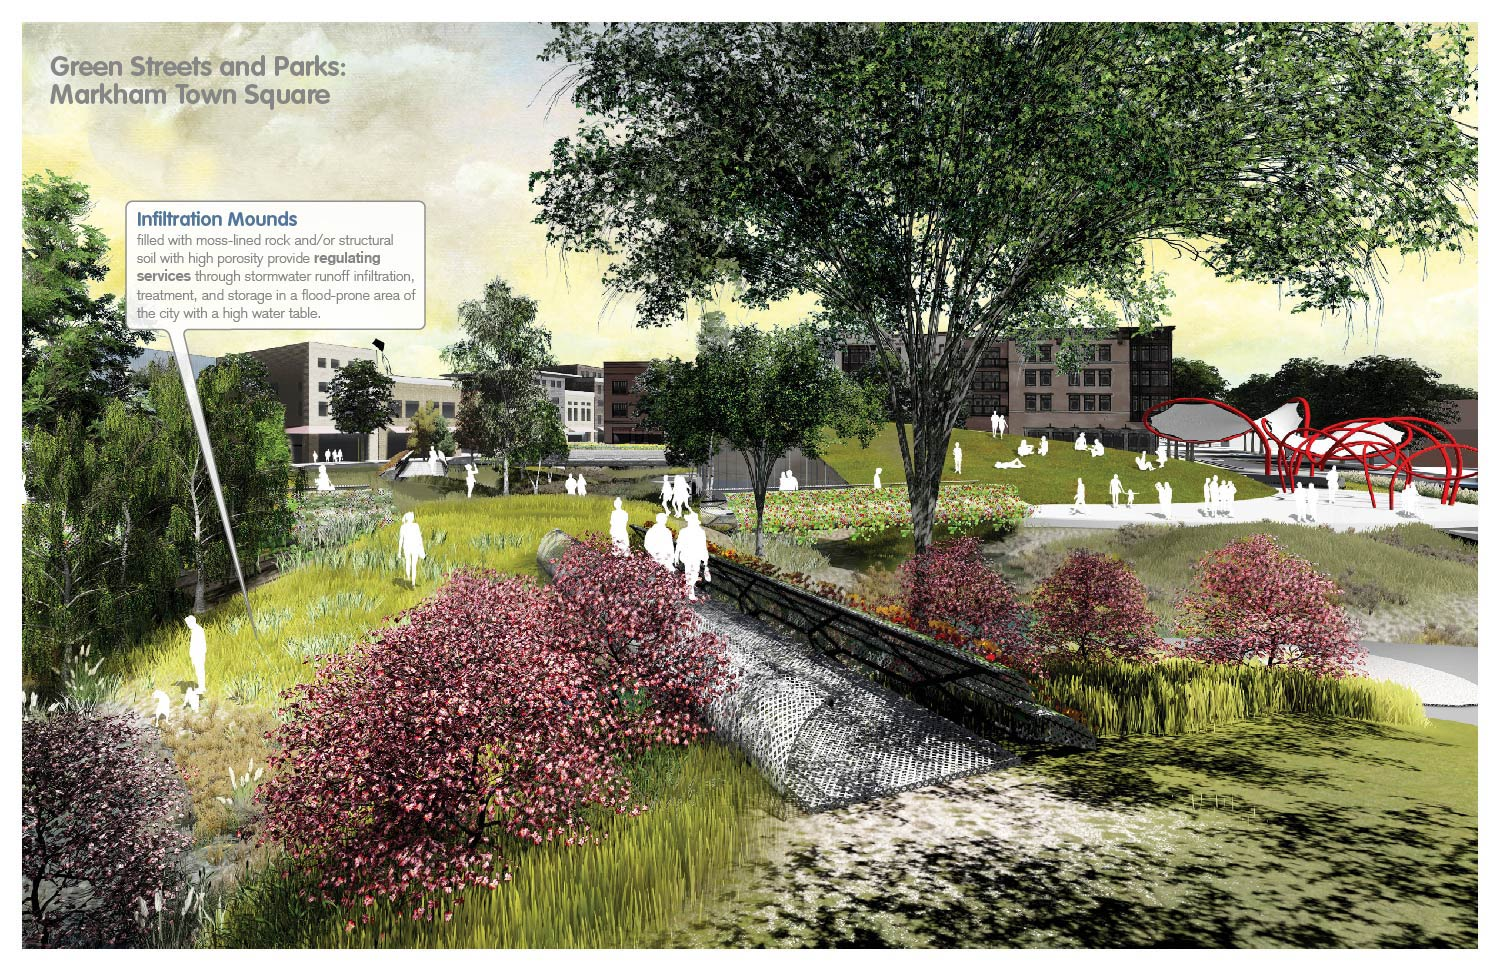 Town Square: infiltration mounds provide regulating services and manage stormwater. University of Arkansas Community Design Center